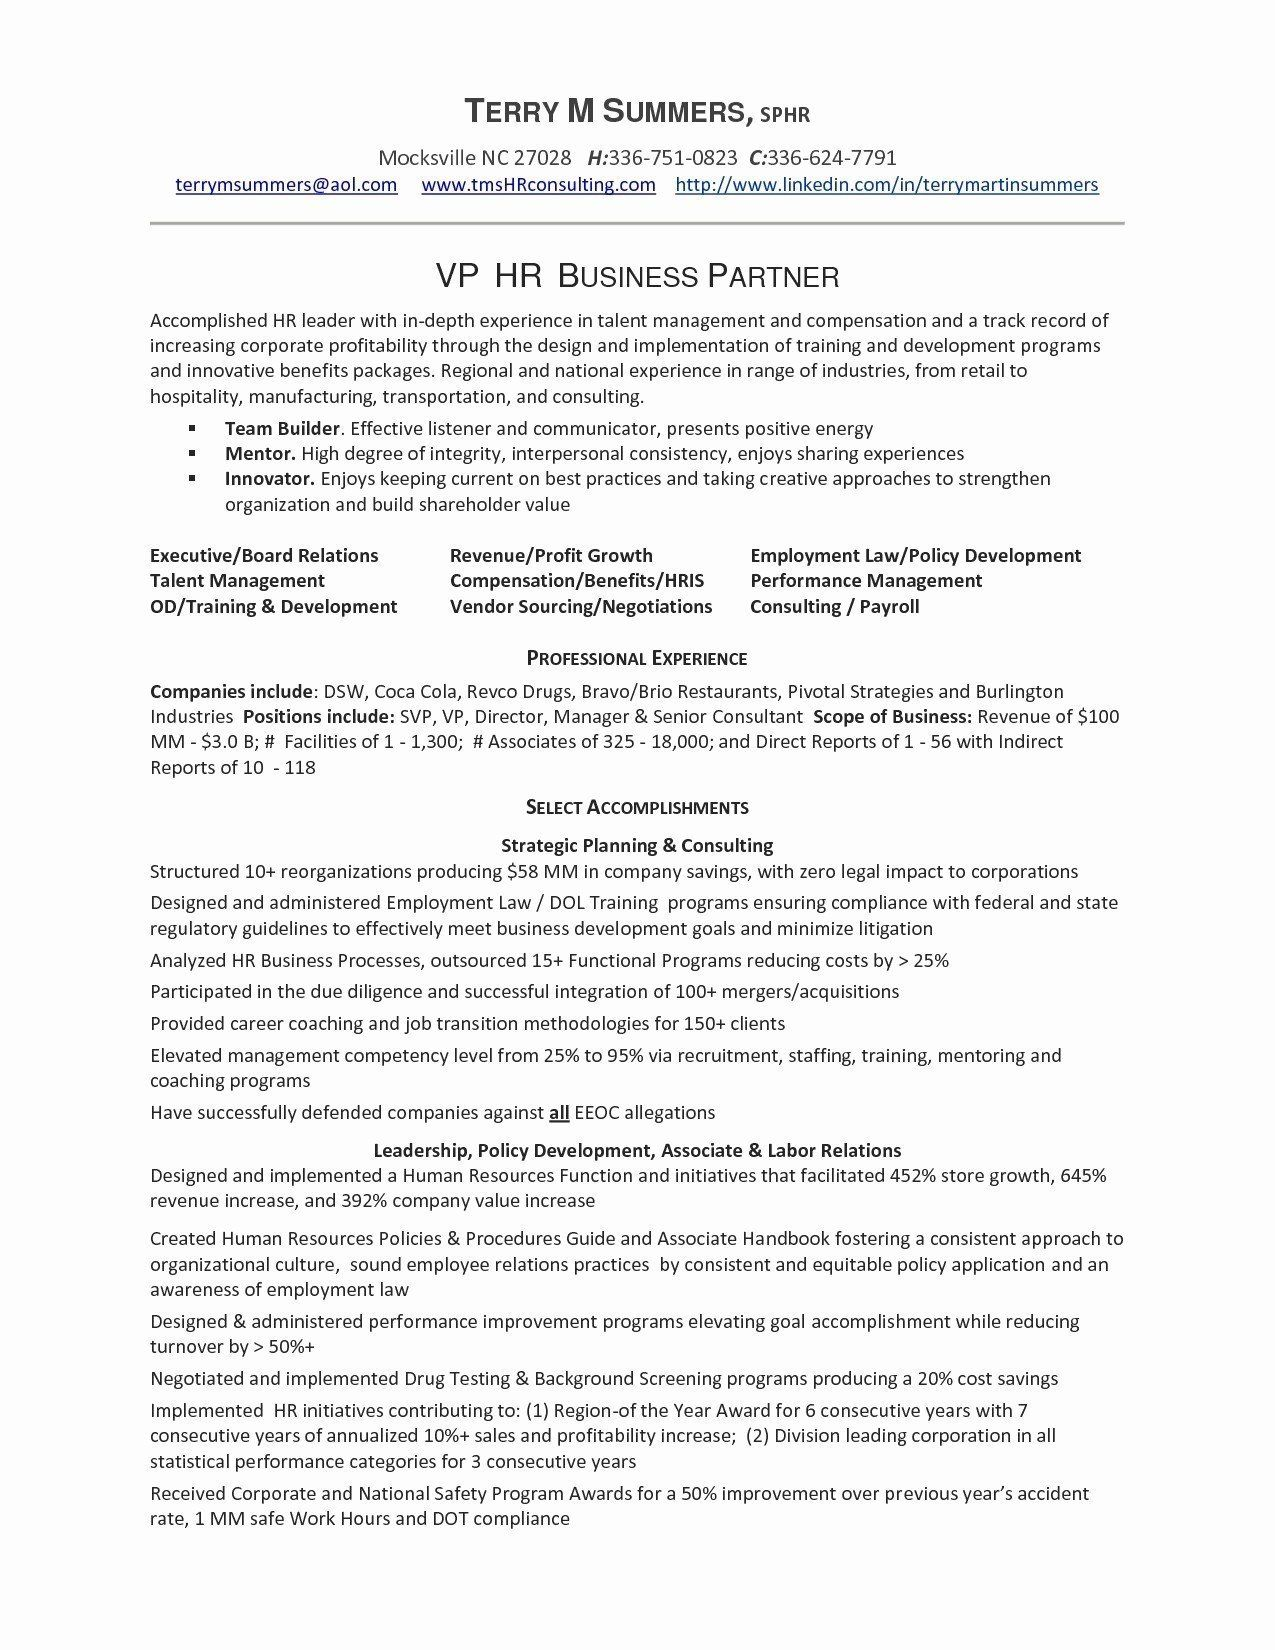 I Am Groot Resume Professional Resume Pdf Archives Wattweiler Org Valid Project Manager Resume Executive Resume Template Resume Skills